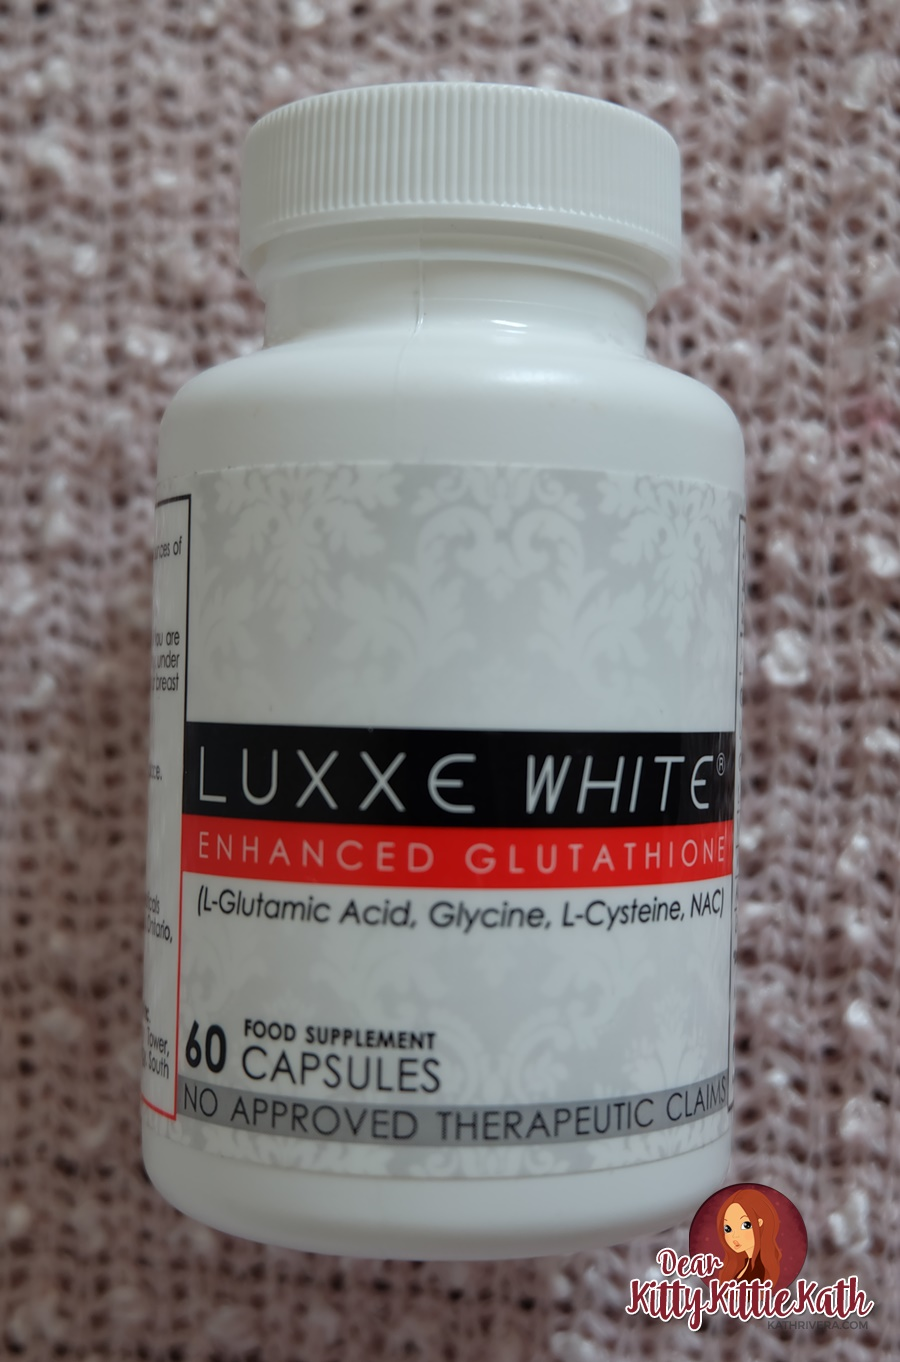 Product Review: Luxxe White Glutathione | Dear Kitty Kittie Kath